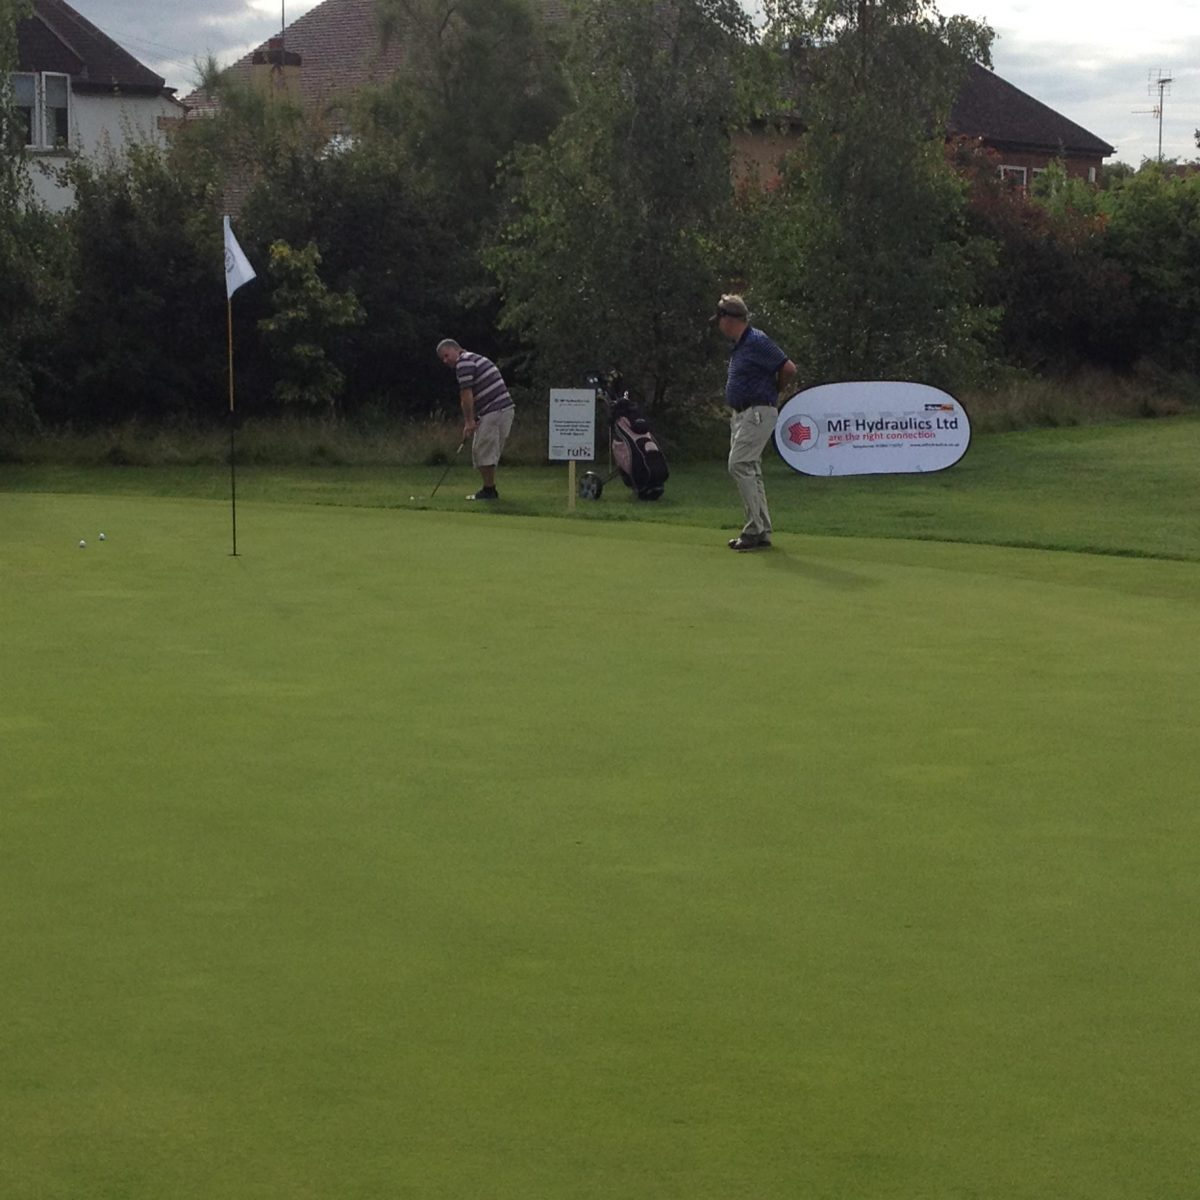 Last Wednesday, members of MF Hydraulics and guest took part in the Kawasaki charity golf day in aid of Royal United Hospital Forever Friends Appeal. A perfect summers day for 21 teams of golfers with MF coming a creditable 5th.A fantastic total of 10,000 was raised in aid of the chosen charity.Kawasaki held the event … Continue reading